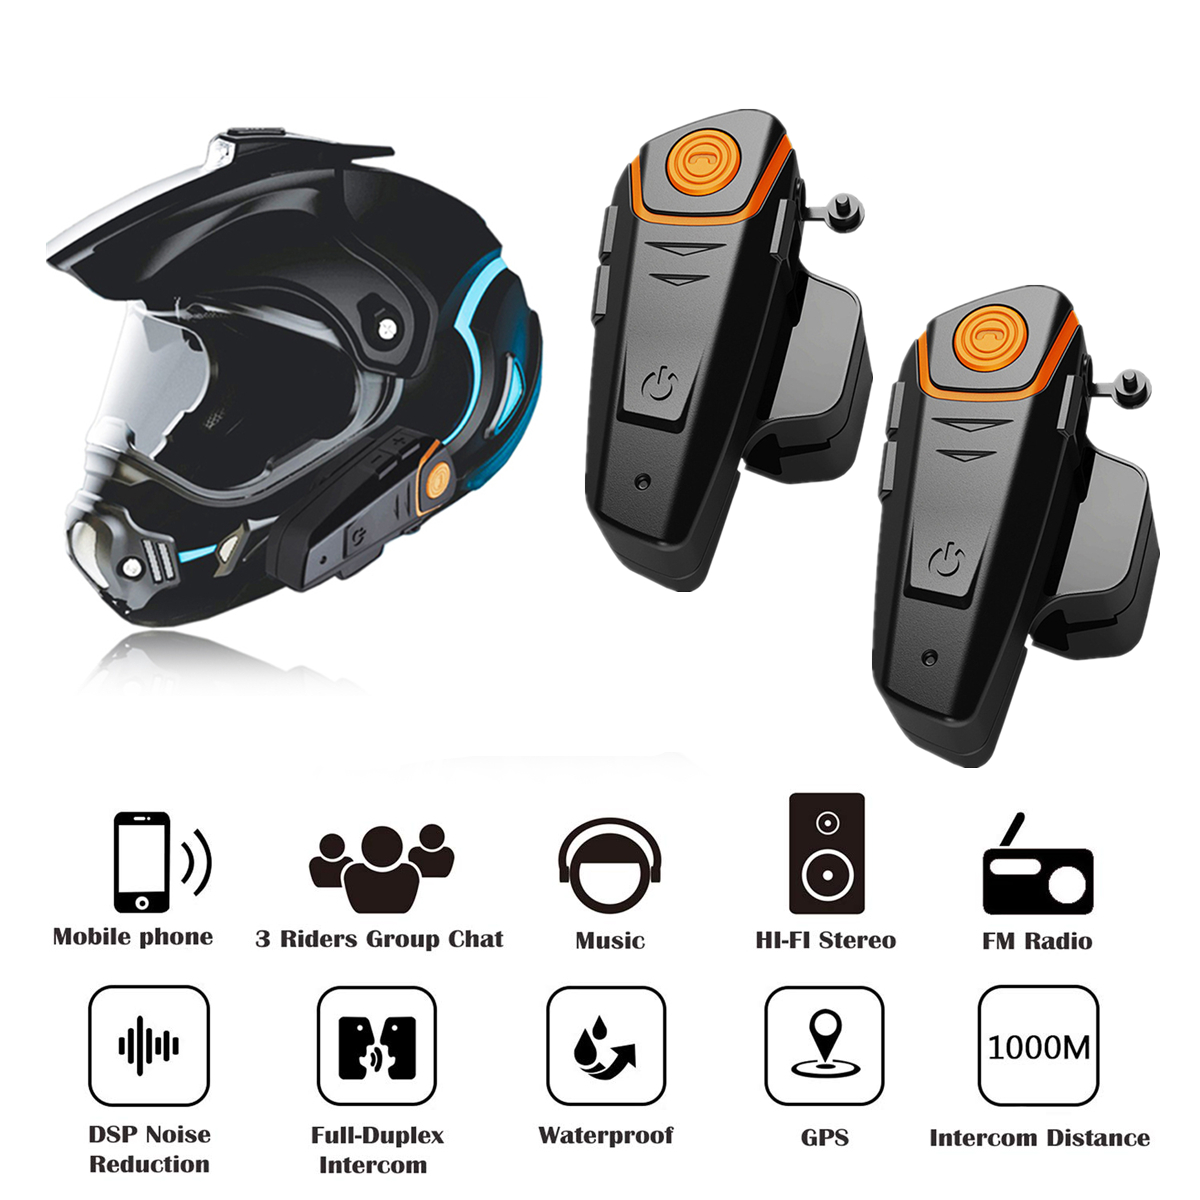 Original 2 Pcs BT-S2 Pro Motorcycle Helmet Intercom Motorbike Wireless Bluetooth Helmet Headset Waterproof  FM Radio Interphone